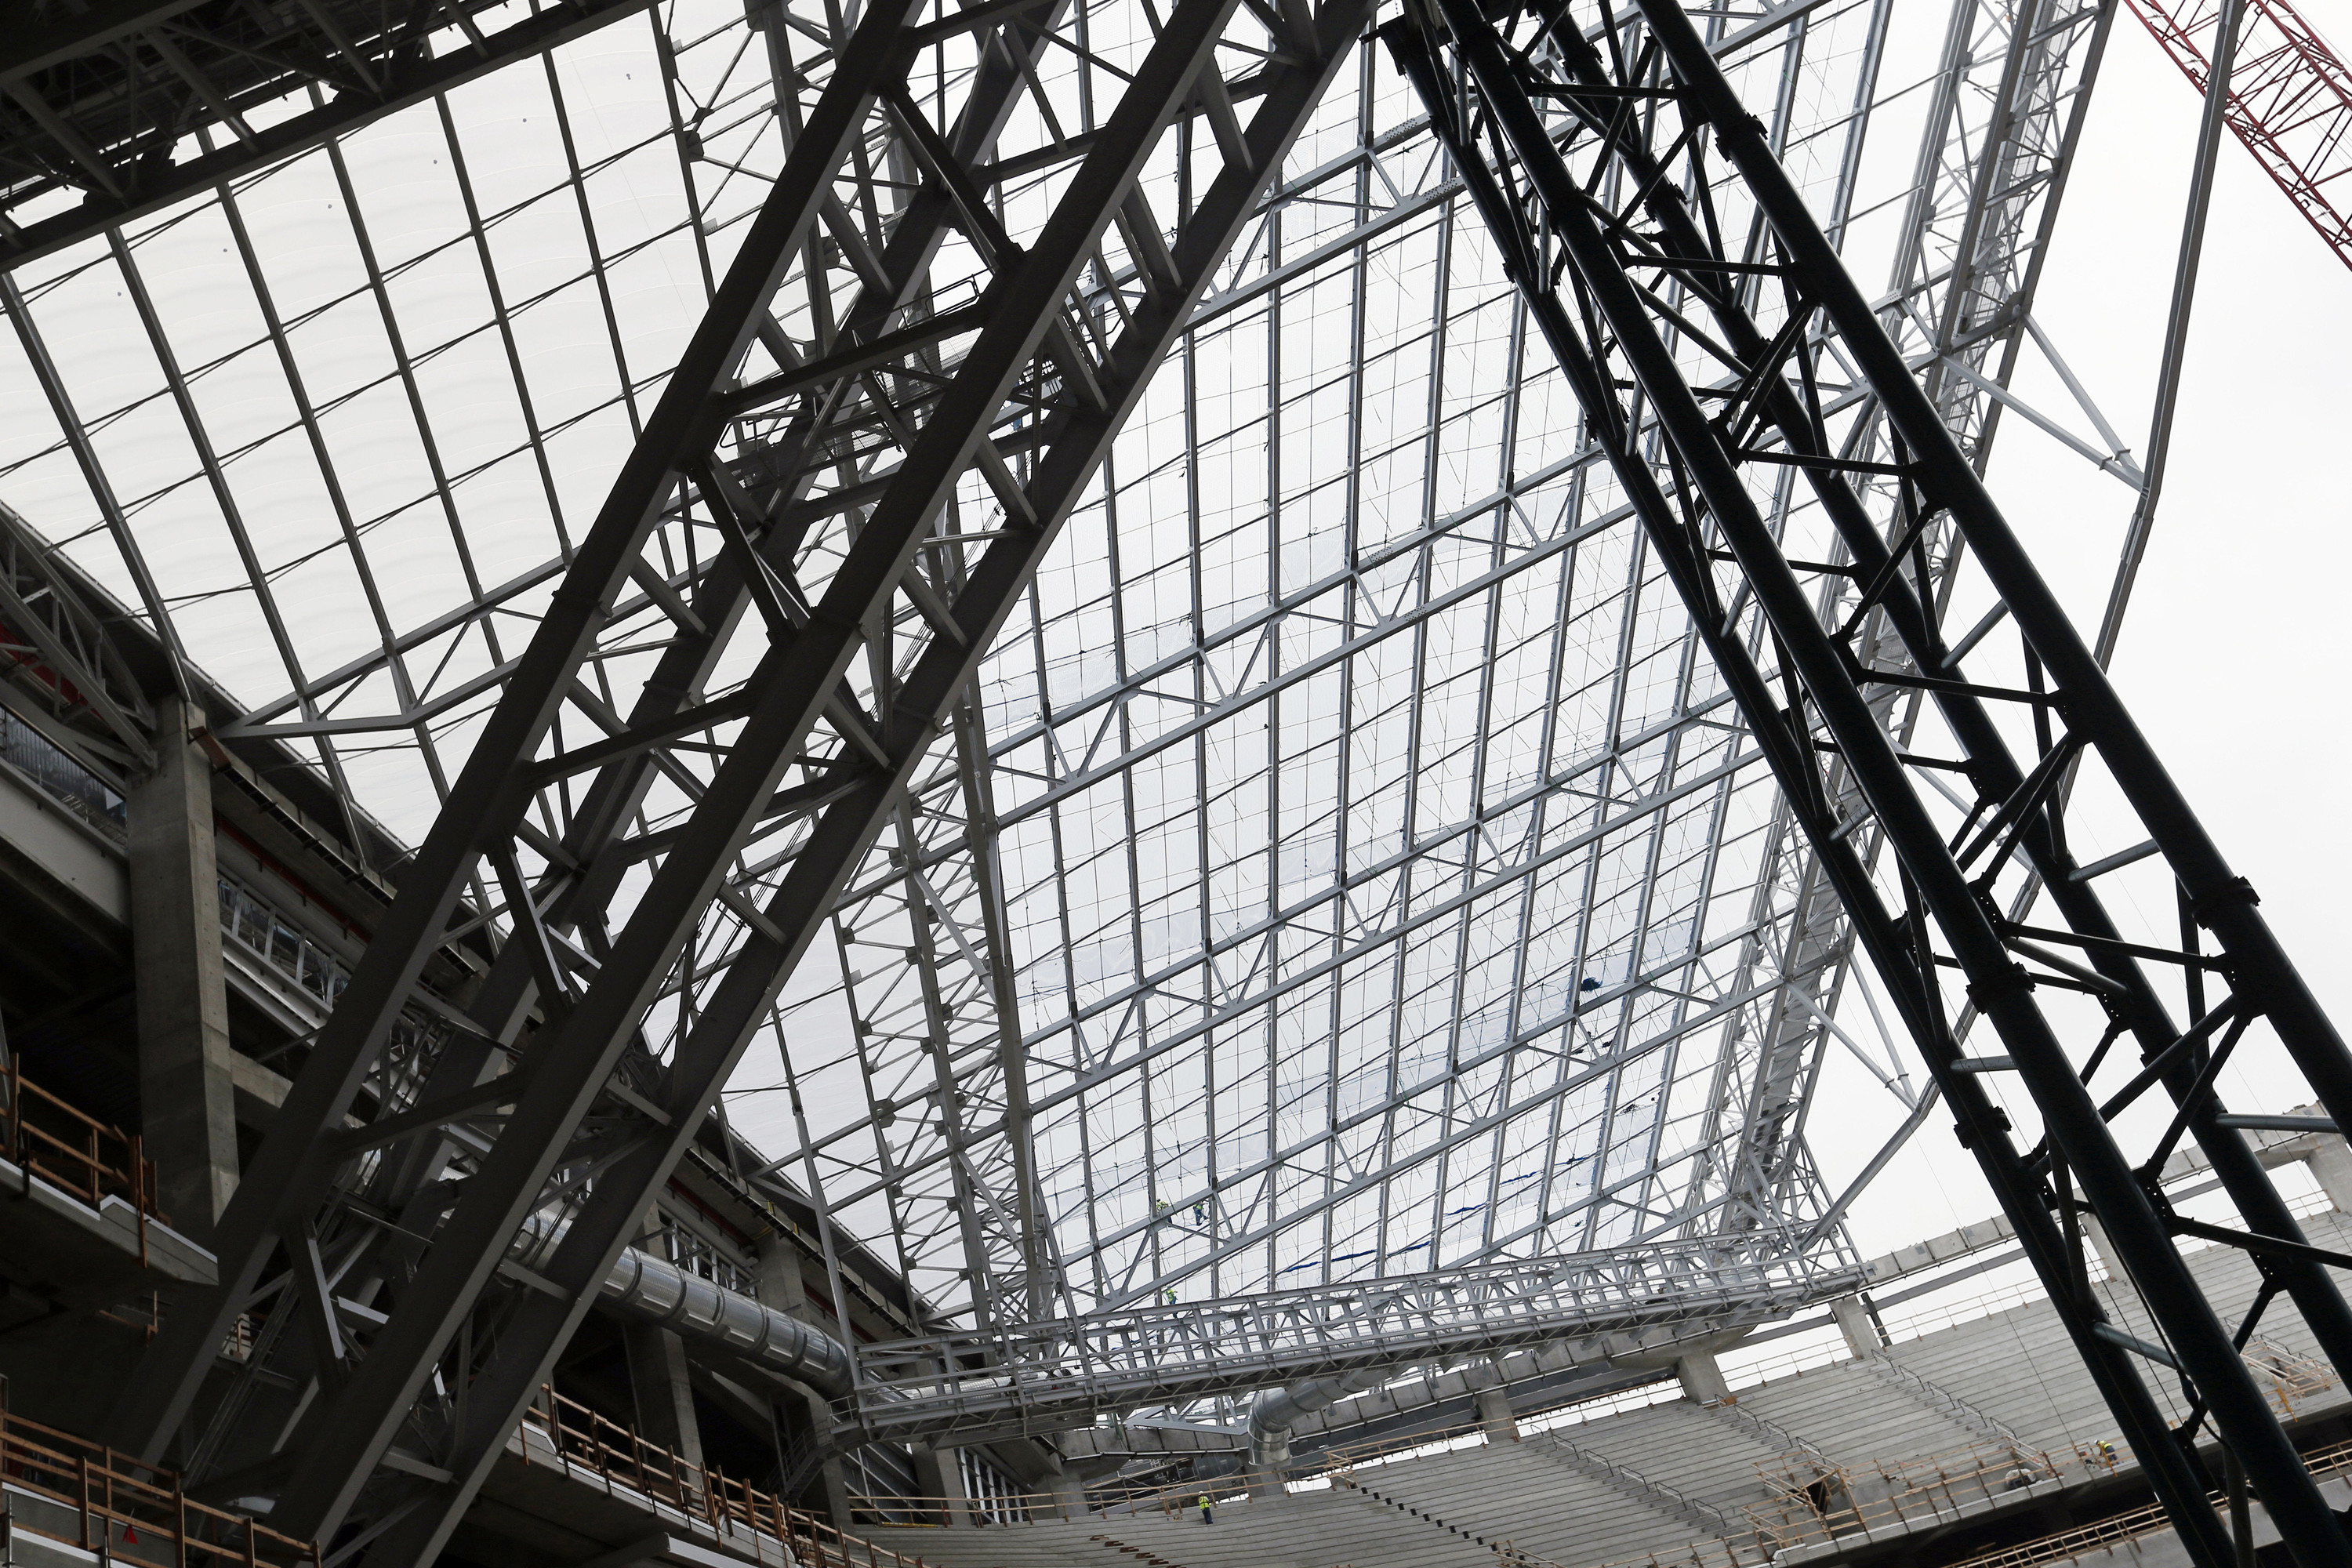 In this photo taken Thursday, July 16, 2015, installed see-through, lightweight EFTE roof panels are visible, upper left triangular section, as the roof takes shape at the new Minnesota Vikings NFL football stadium that is under construction in Minneapolis. The architect chose the alternative roof that will let the light stream in during games and make fans feel closer to being outside. (AP Photo/Jim Mone)